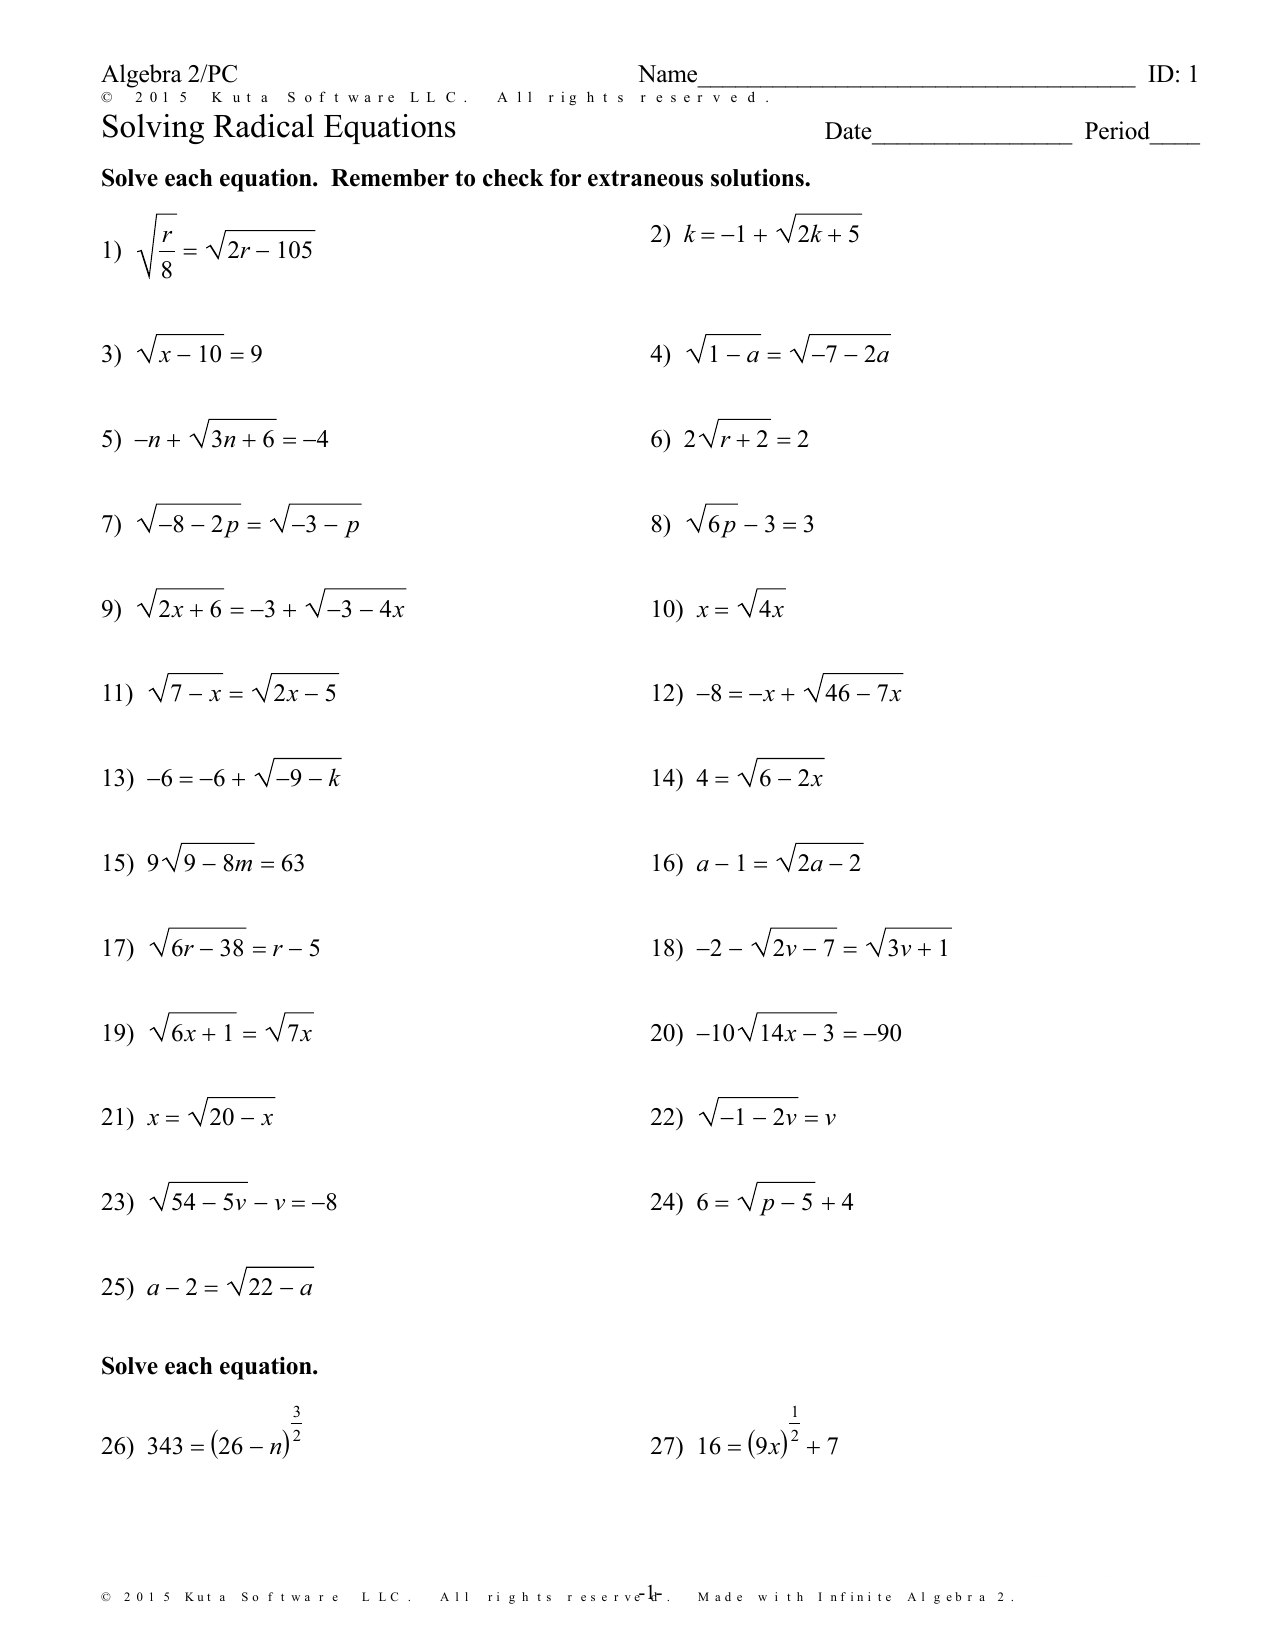 Solving Radical Equations Worksheet Answer Key Algebra 2